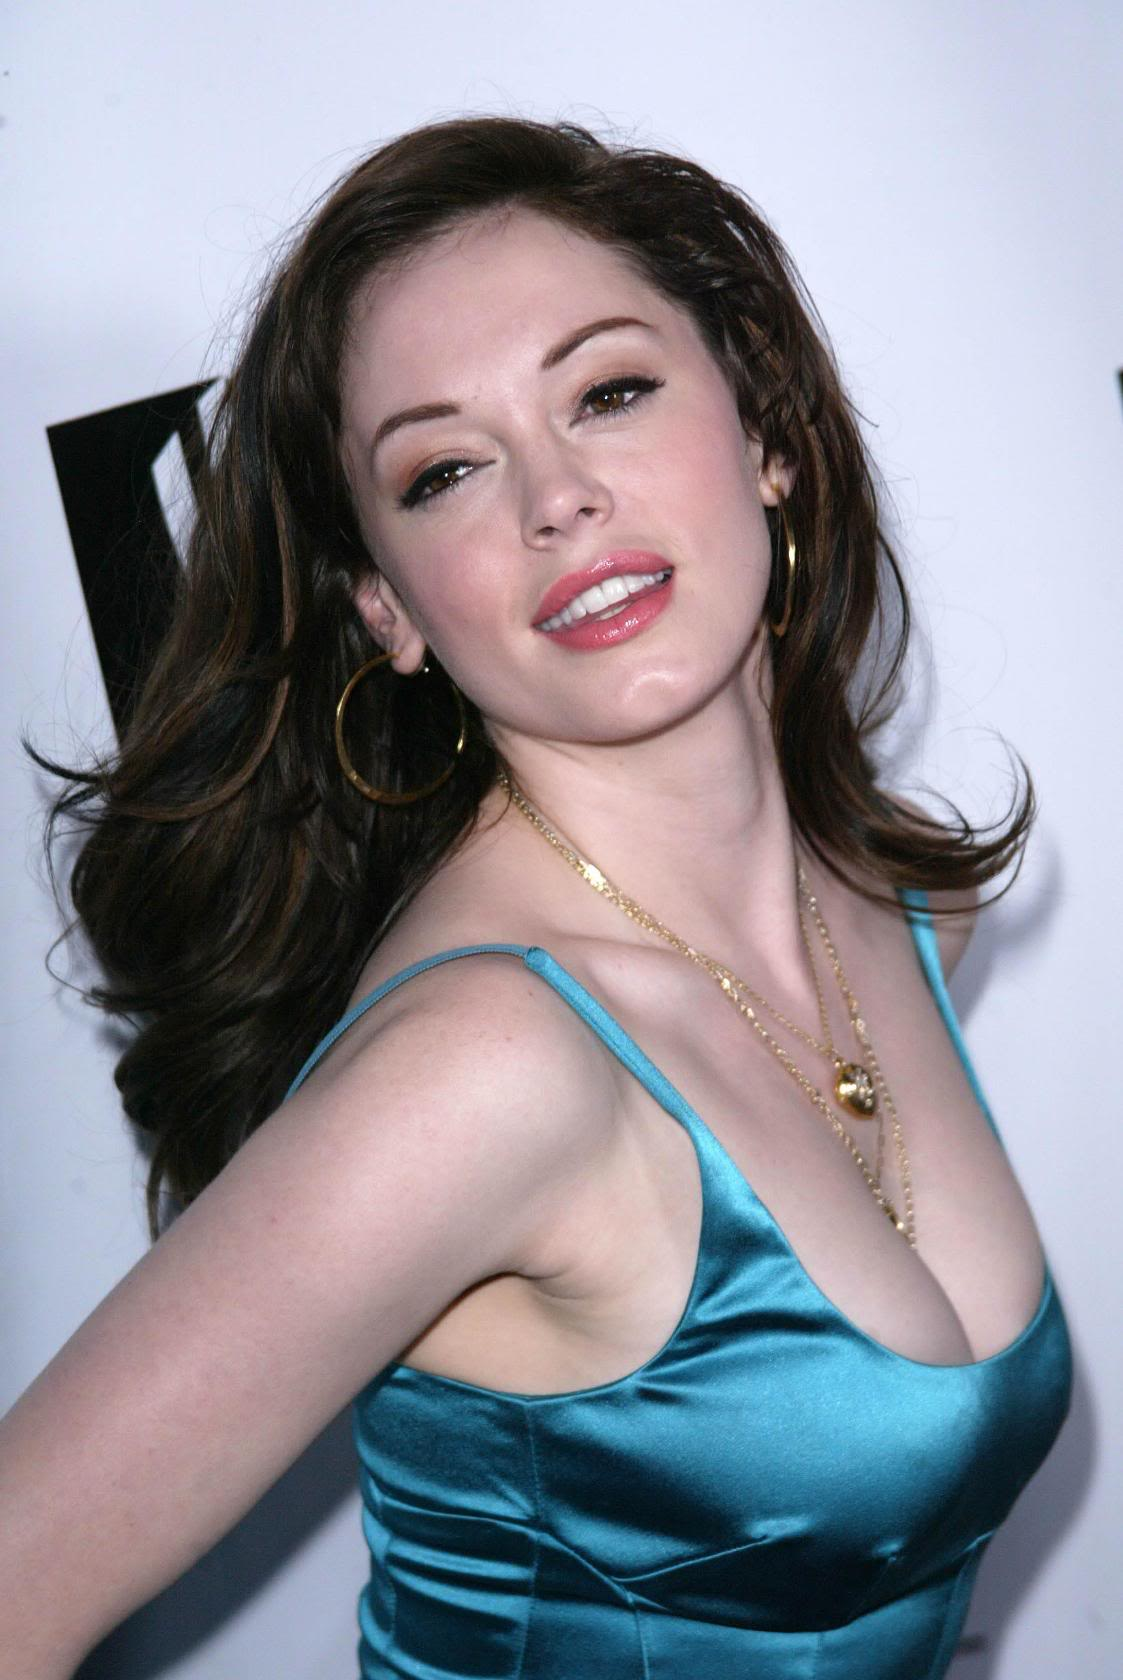 Rose Mcgowan Before And After Boob Job Surgery Vip